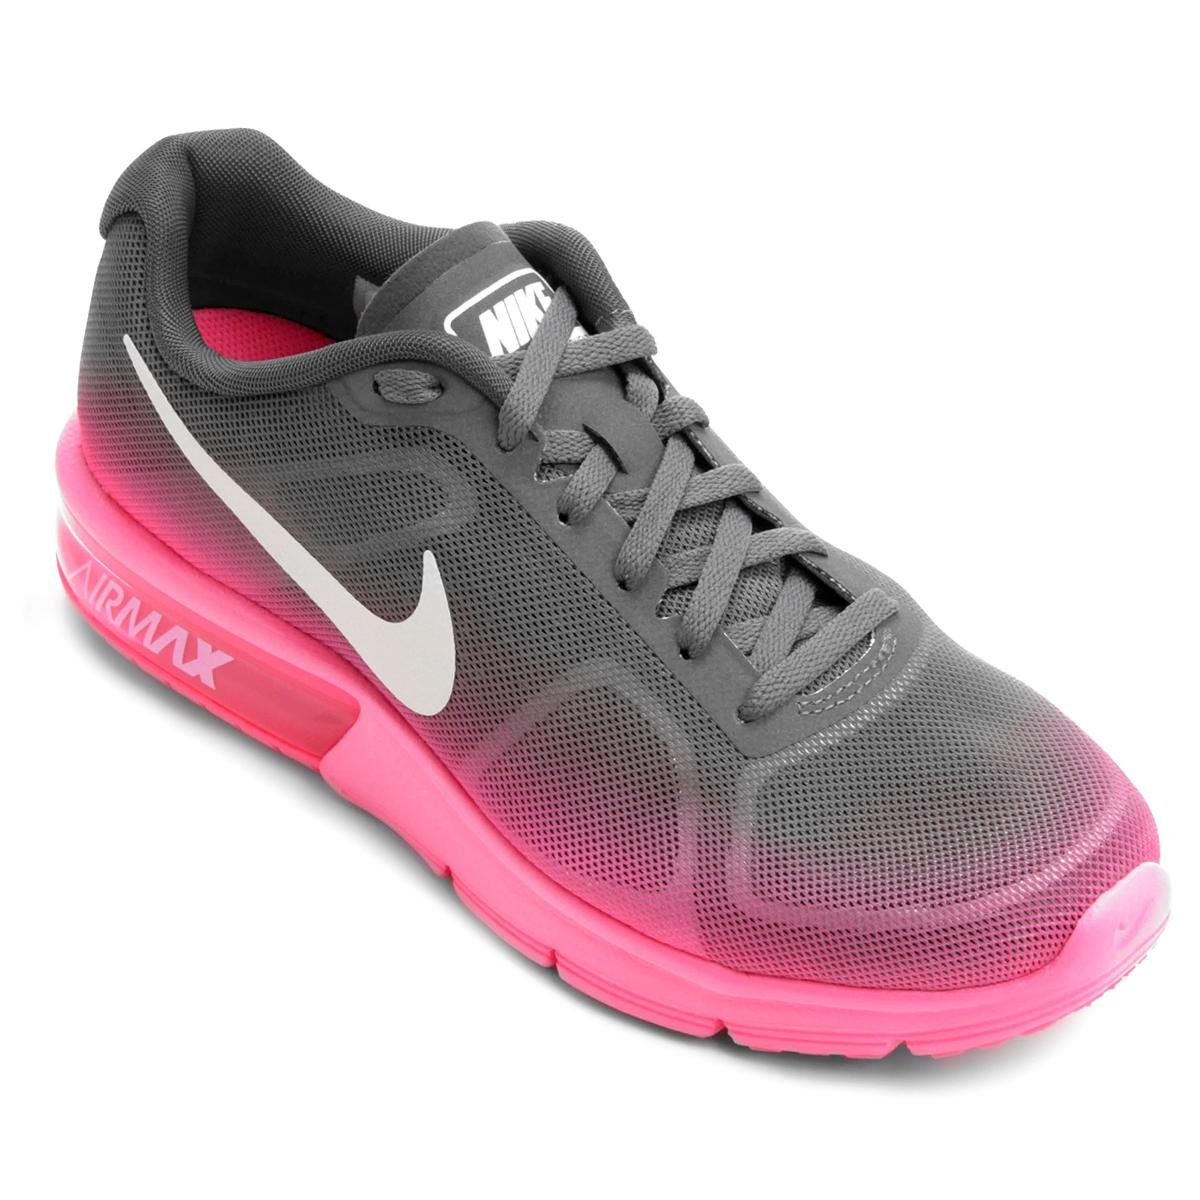 b2de1fb1202 ... usa tênis nike air max sequent feminino 3e57c a3e57 ...